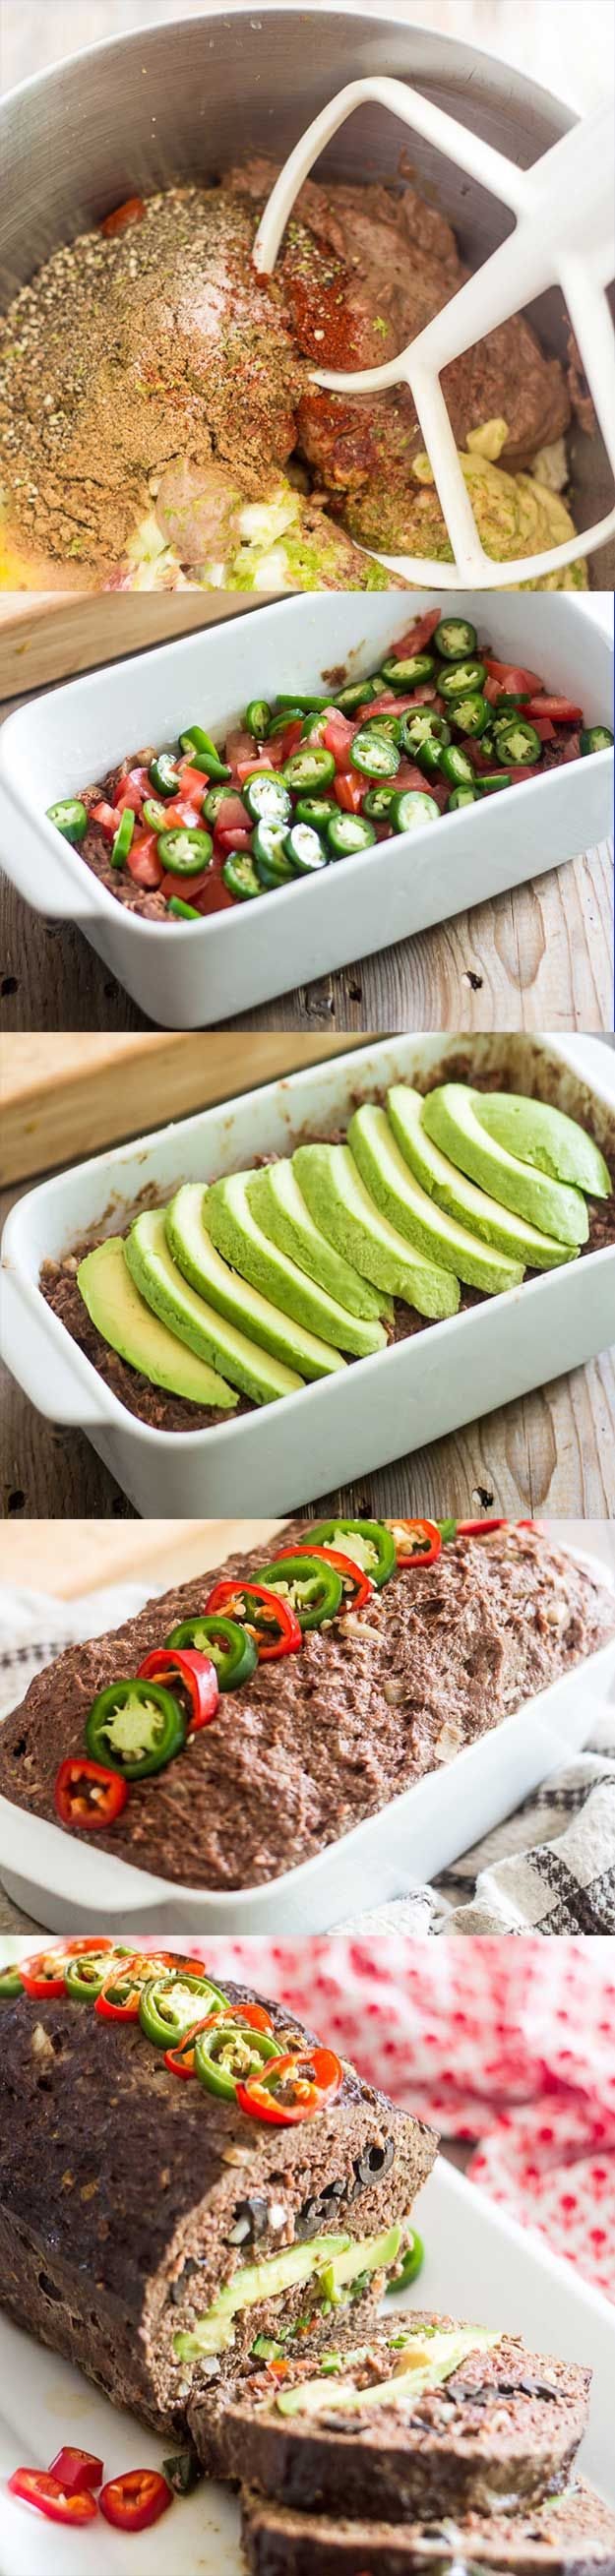 Loaded Mexican Meatloaf | Homesteading Recipes | Cooking on the Homestead Ideas and Tips at pioneersettler.com